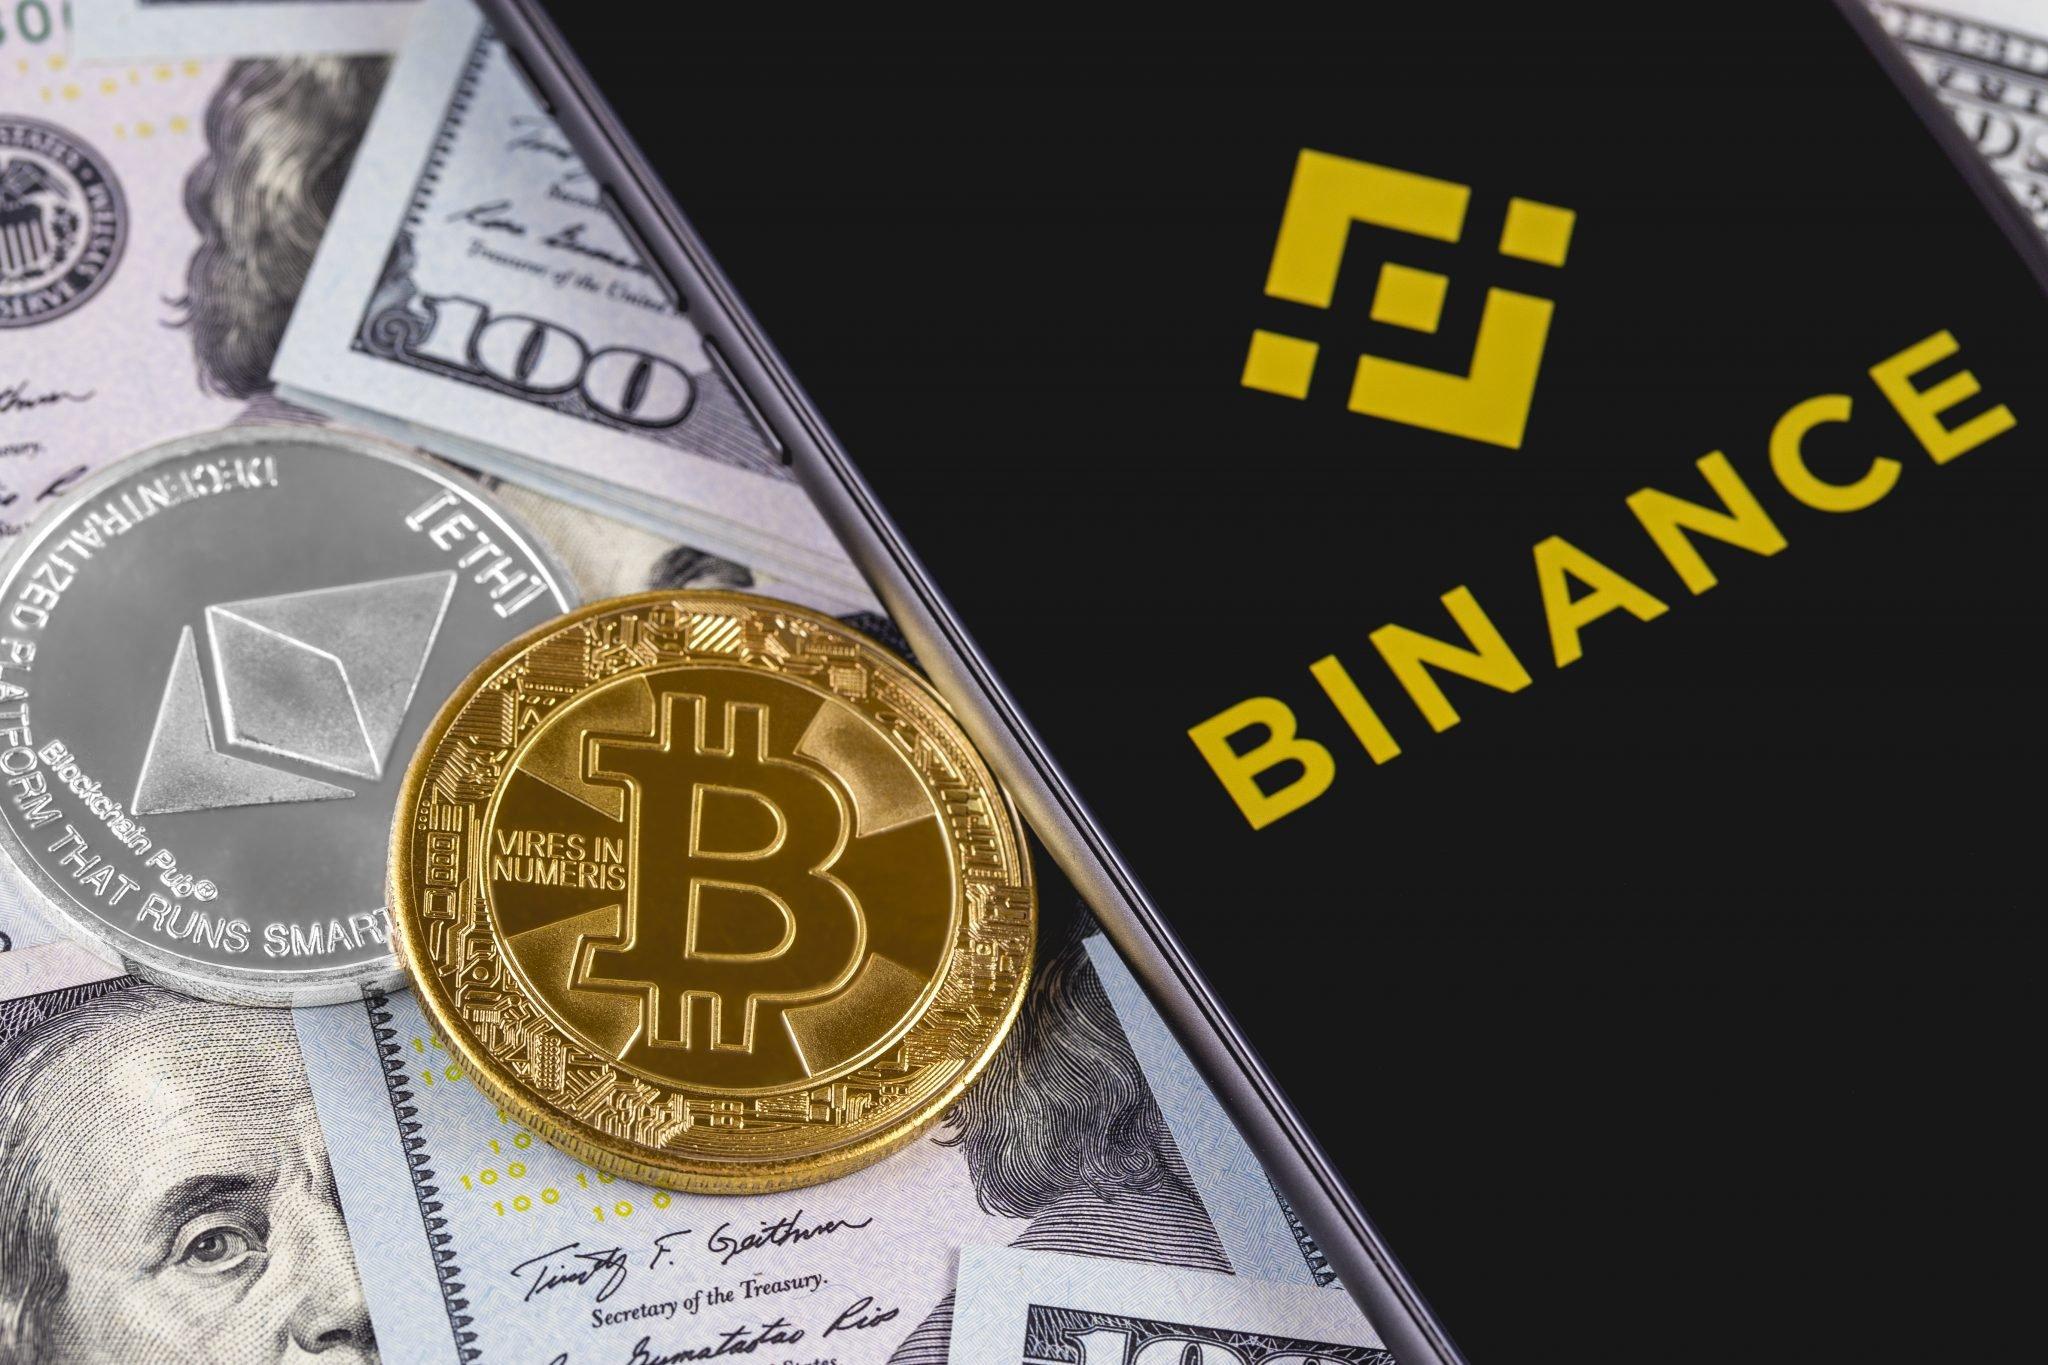 Apple iPhone and Binance logo and bitcoin, ethereum and dollars. Binance is a cryptocurrency exchange. Ekaterinburg, Russia - September 19, 2018